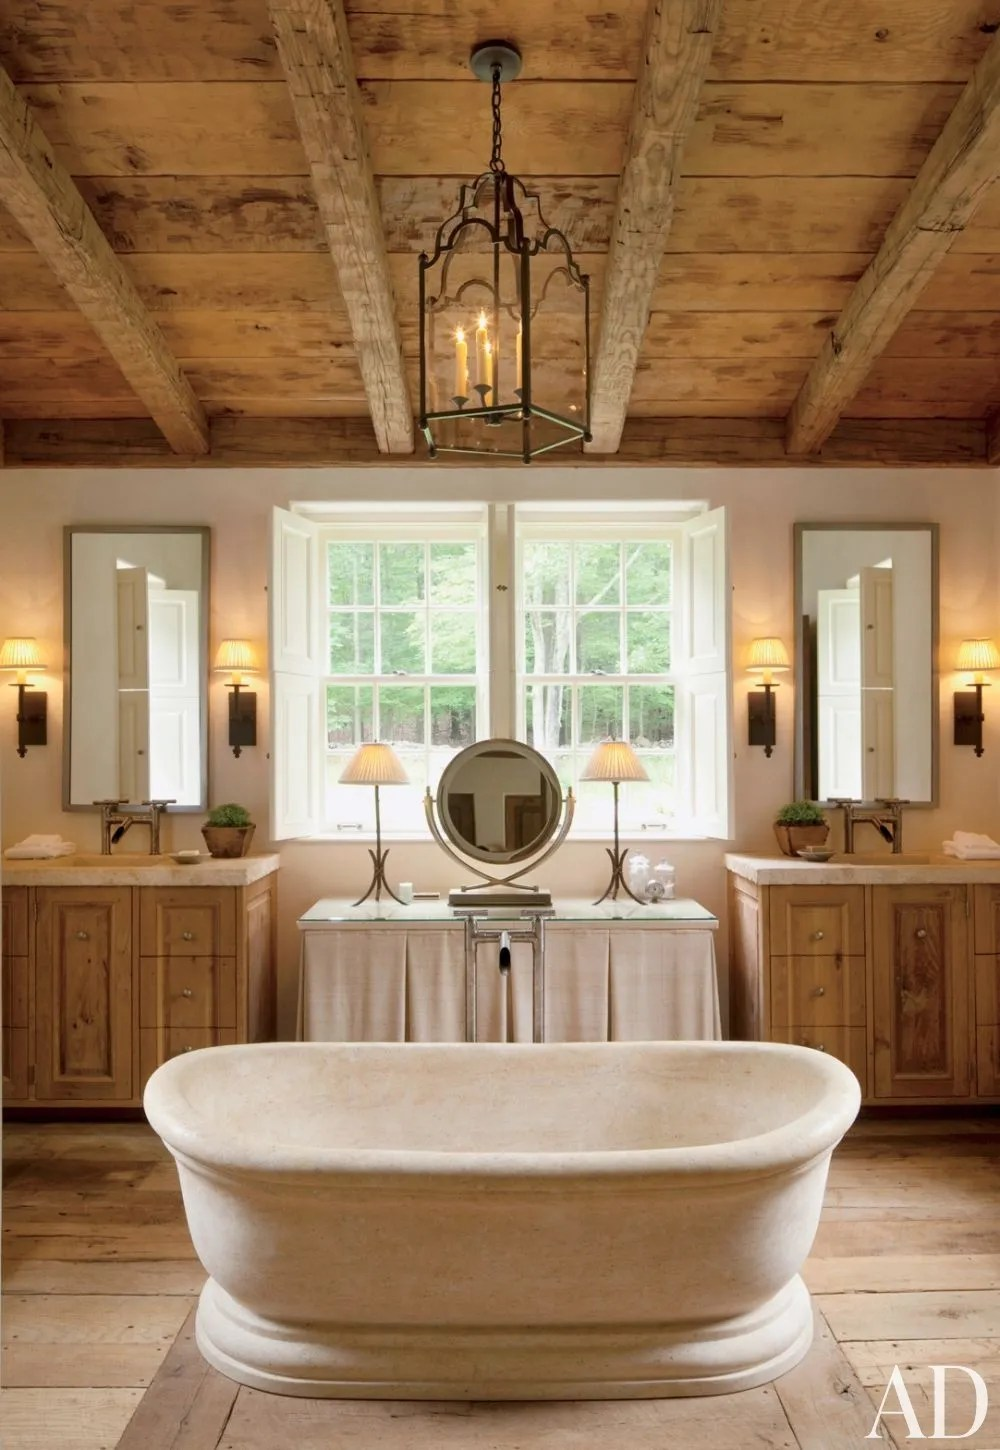 42 Exquisite Tubs To Inspire Your Next Bathroom Renovation Architectural Digest